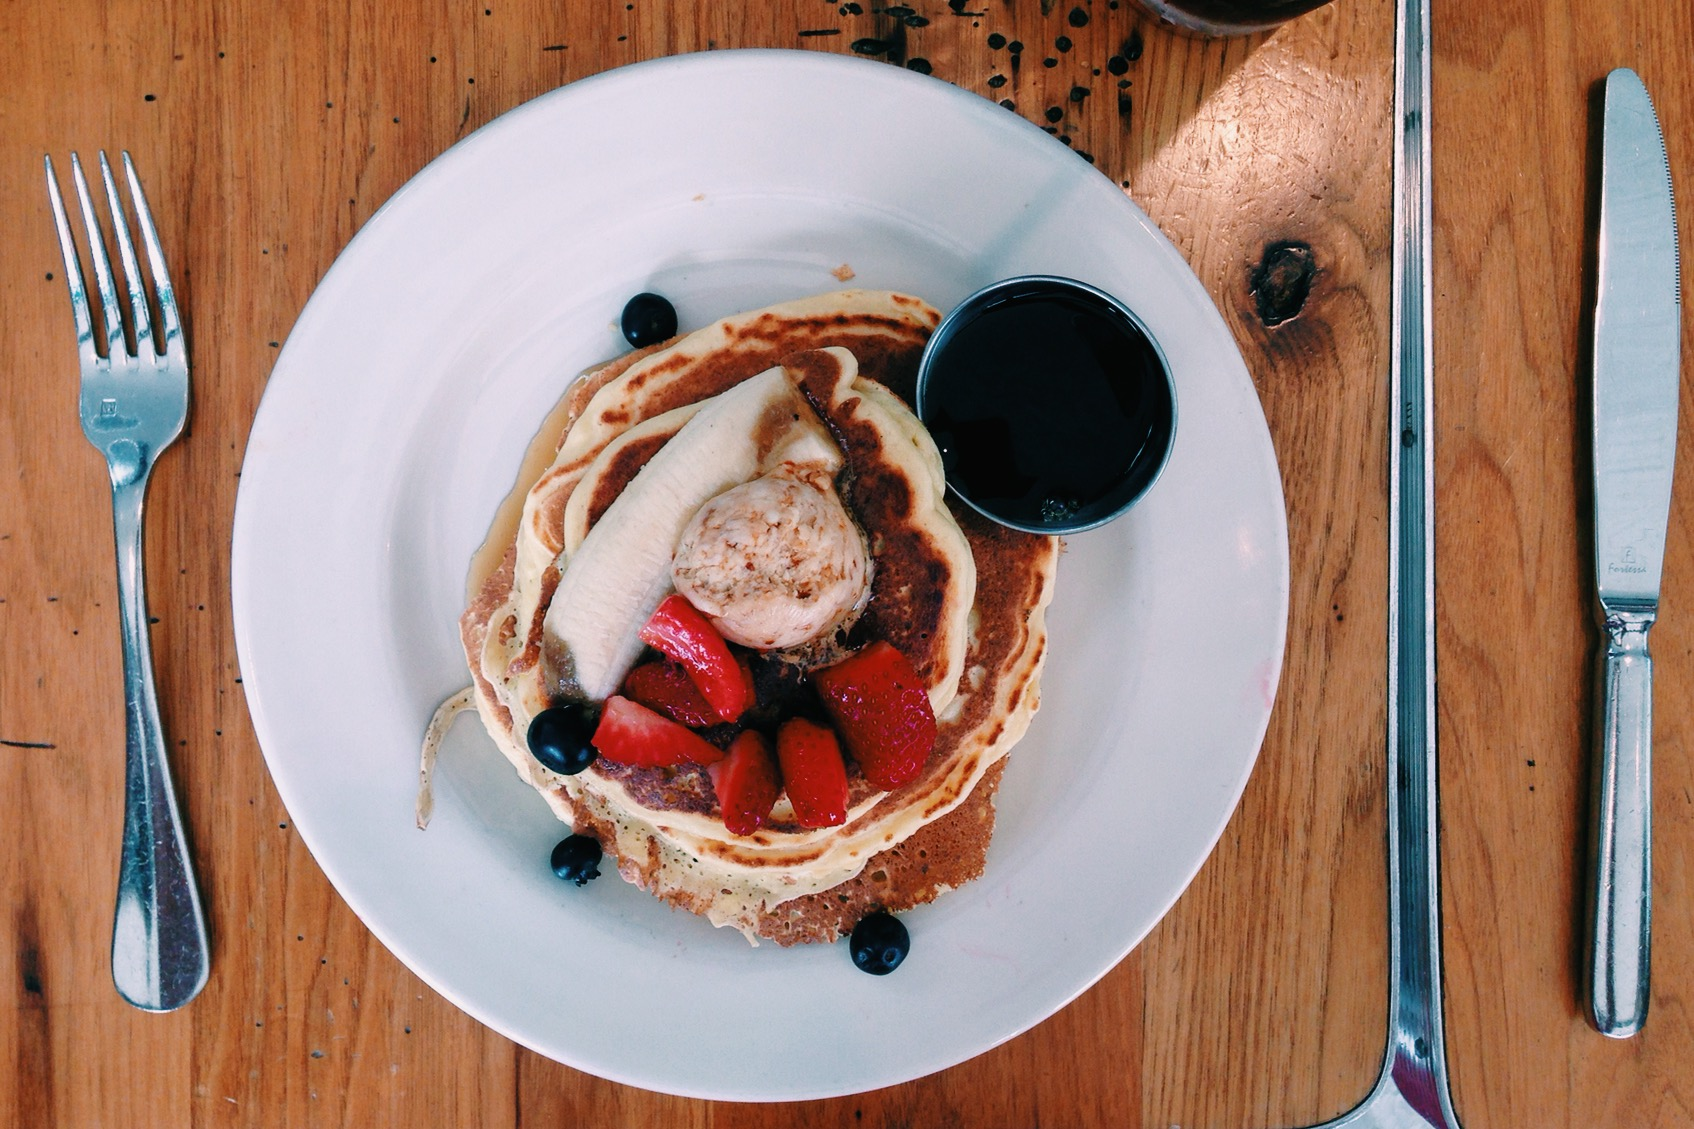 Thursday's breakfast // ricotta pancakes